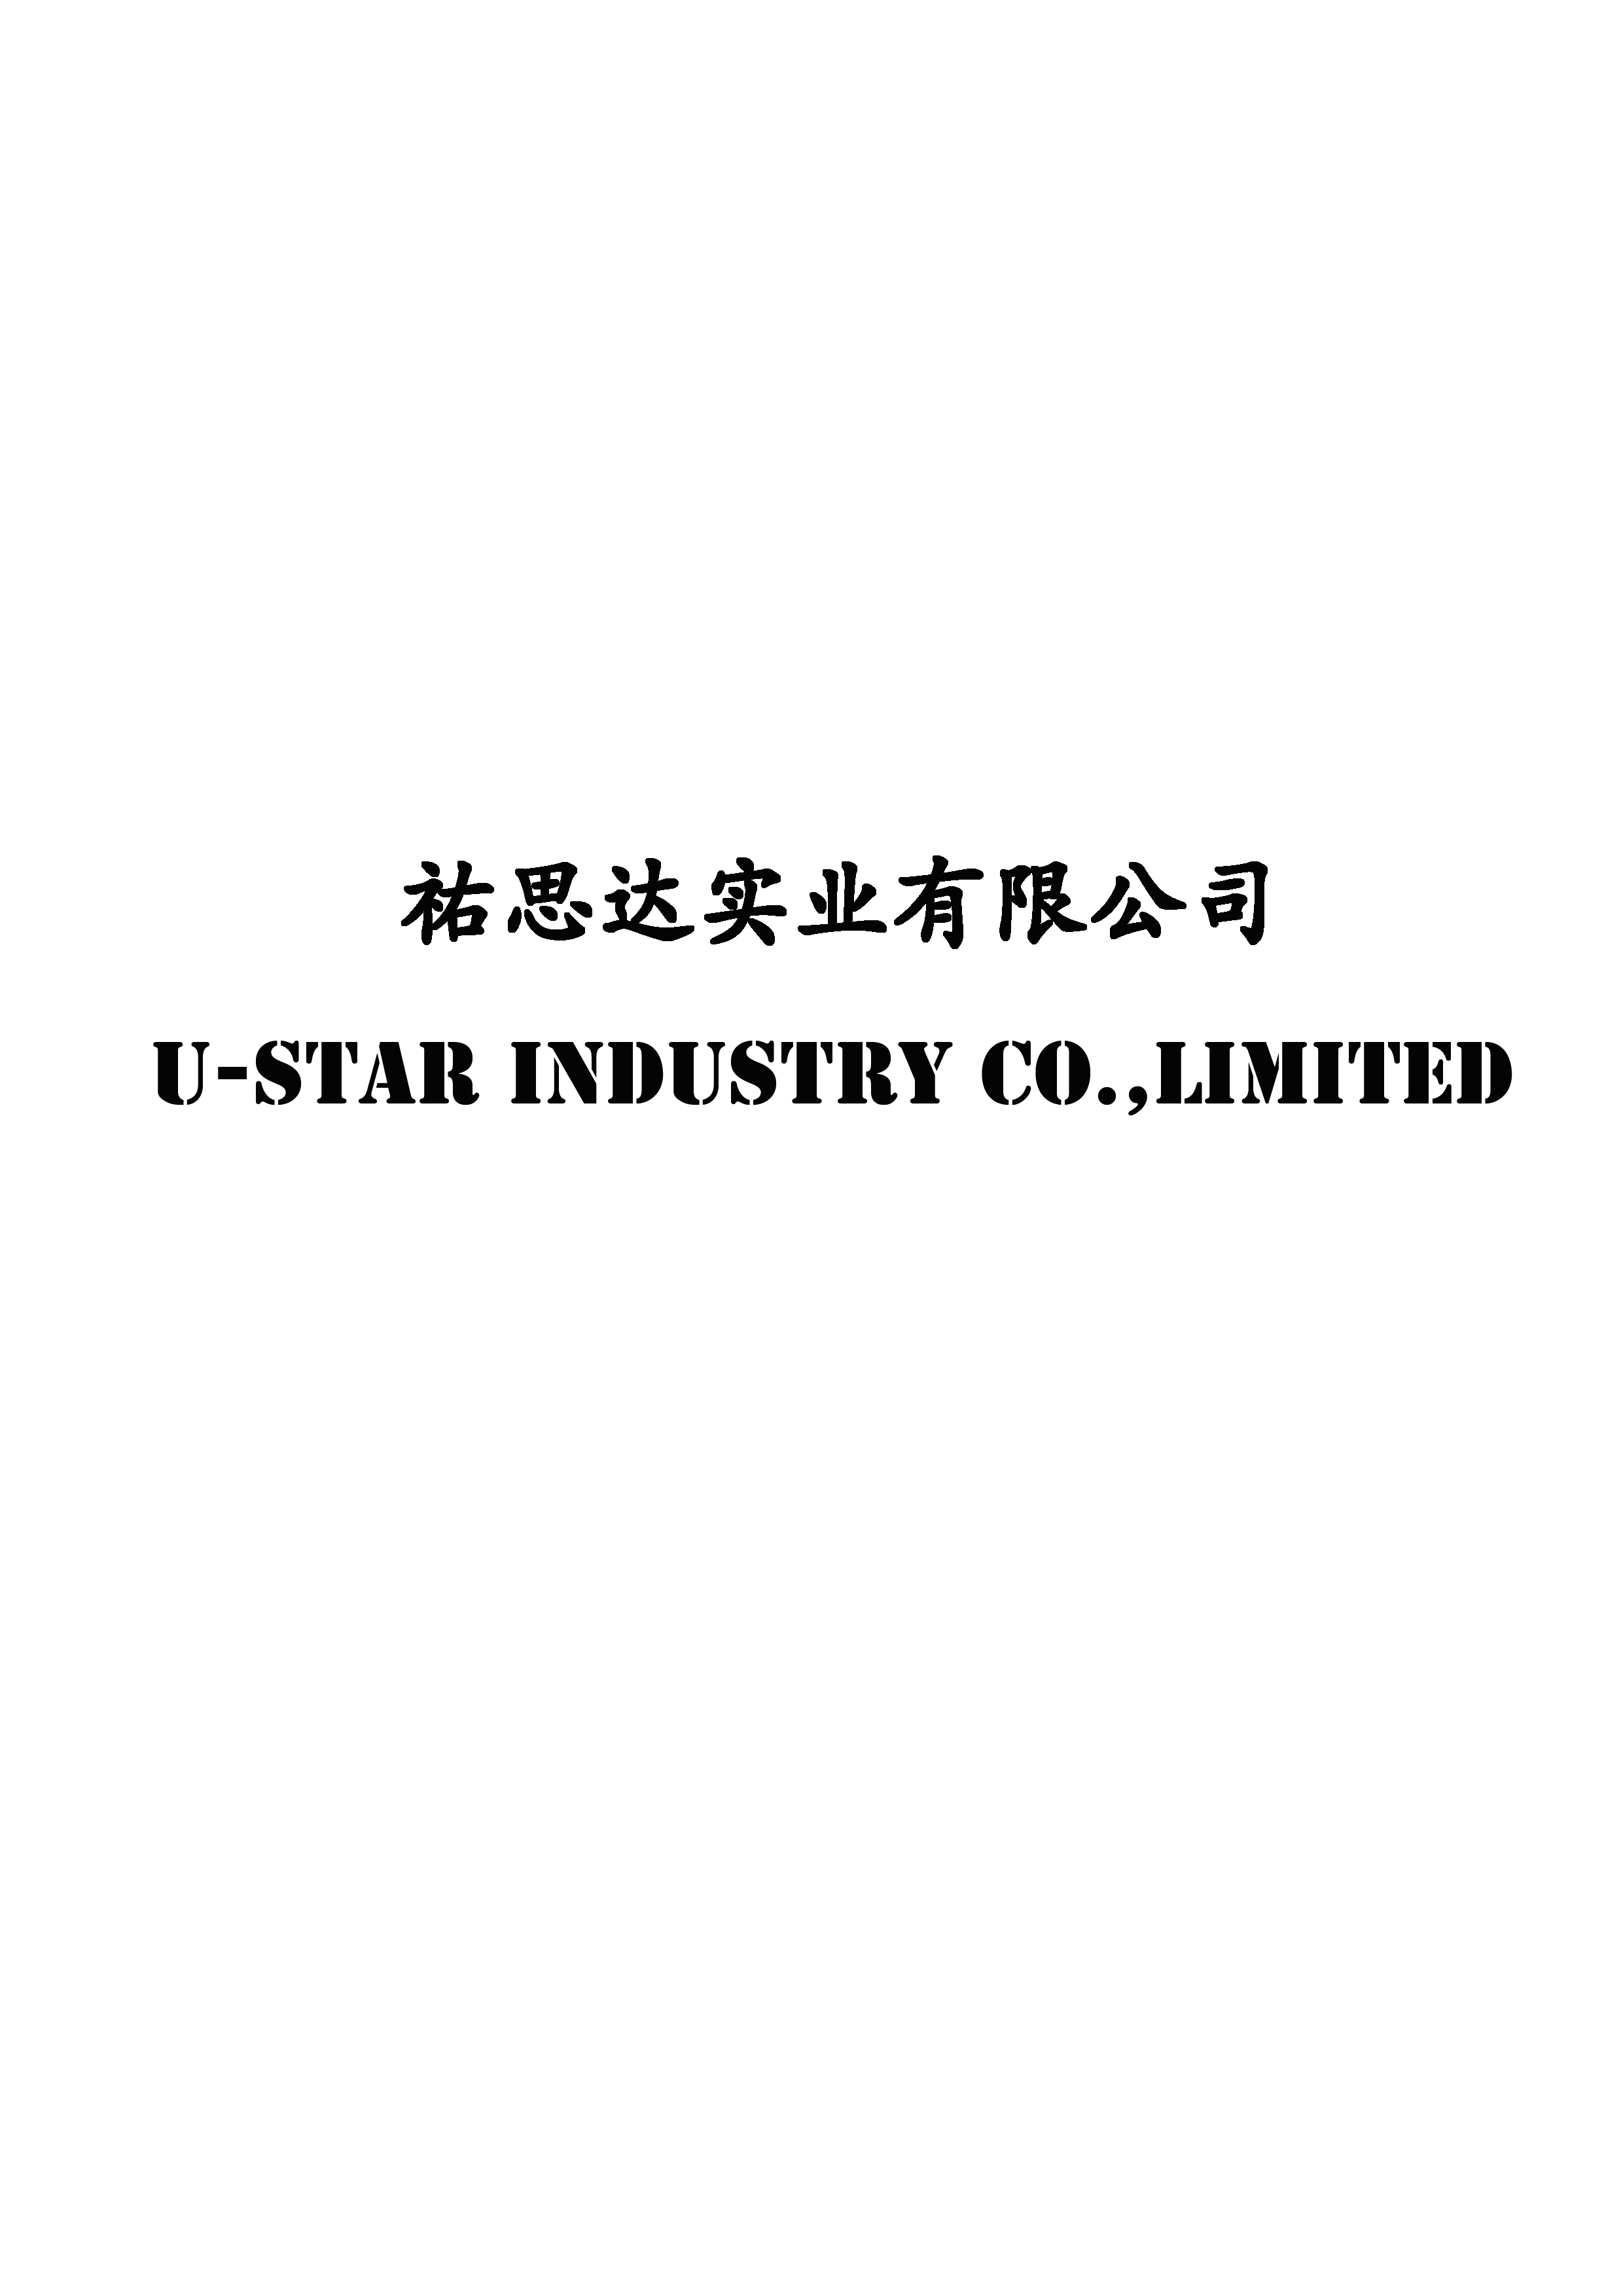 U&STAR INDUSTRY CO.,LTD Main Image